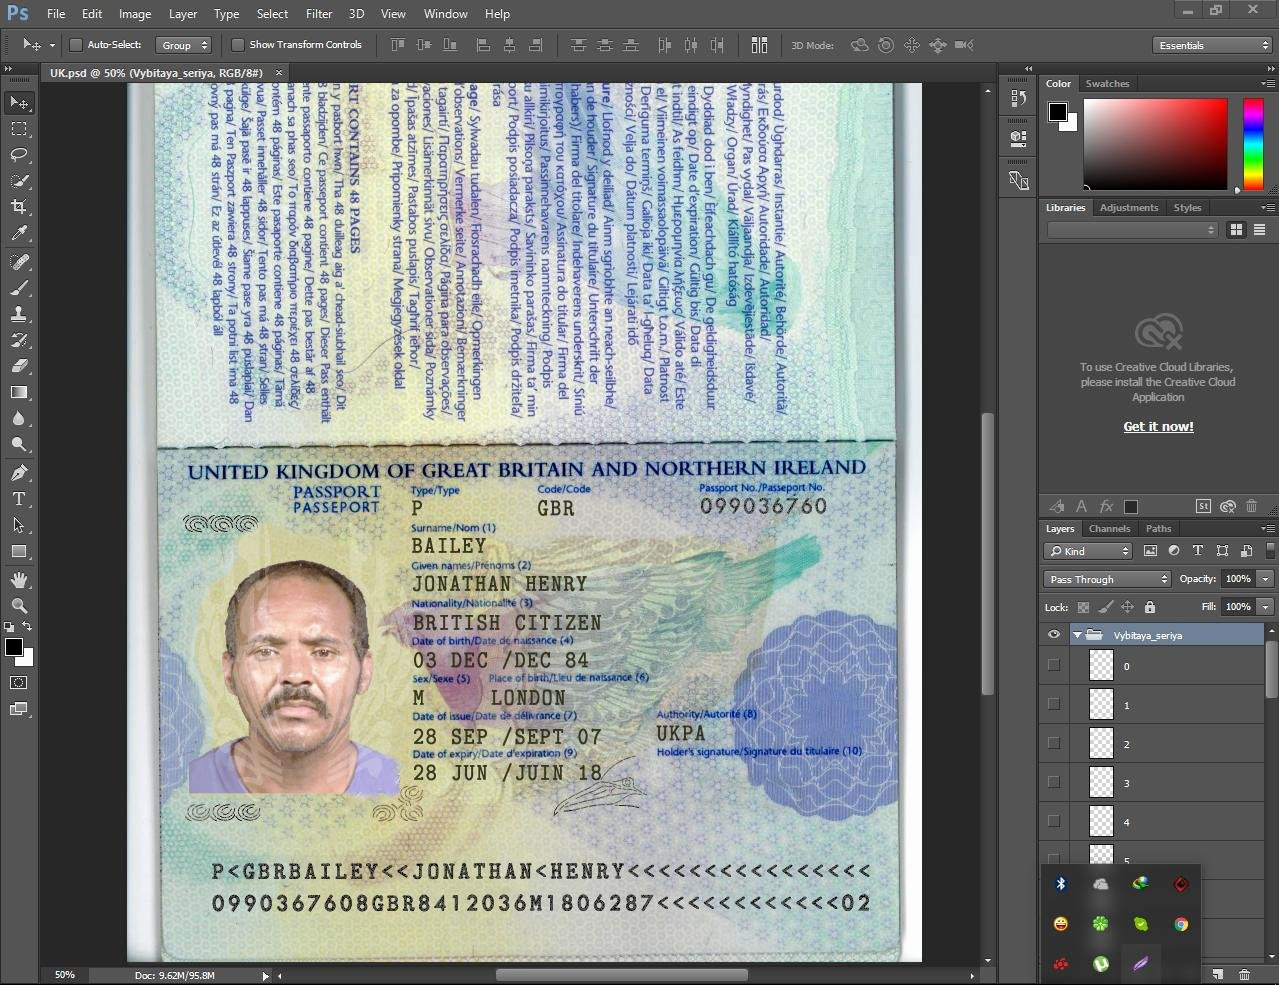 Passport Photo Template Psd Lovely Yezlodz Educational Hacks and Tutorials Uk Passport Psd